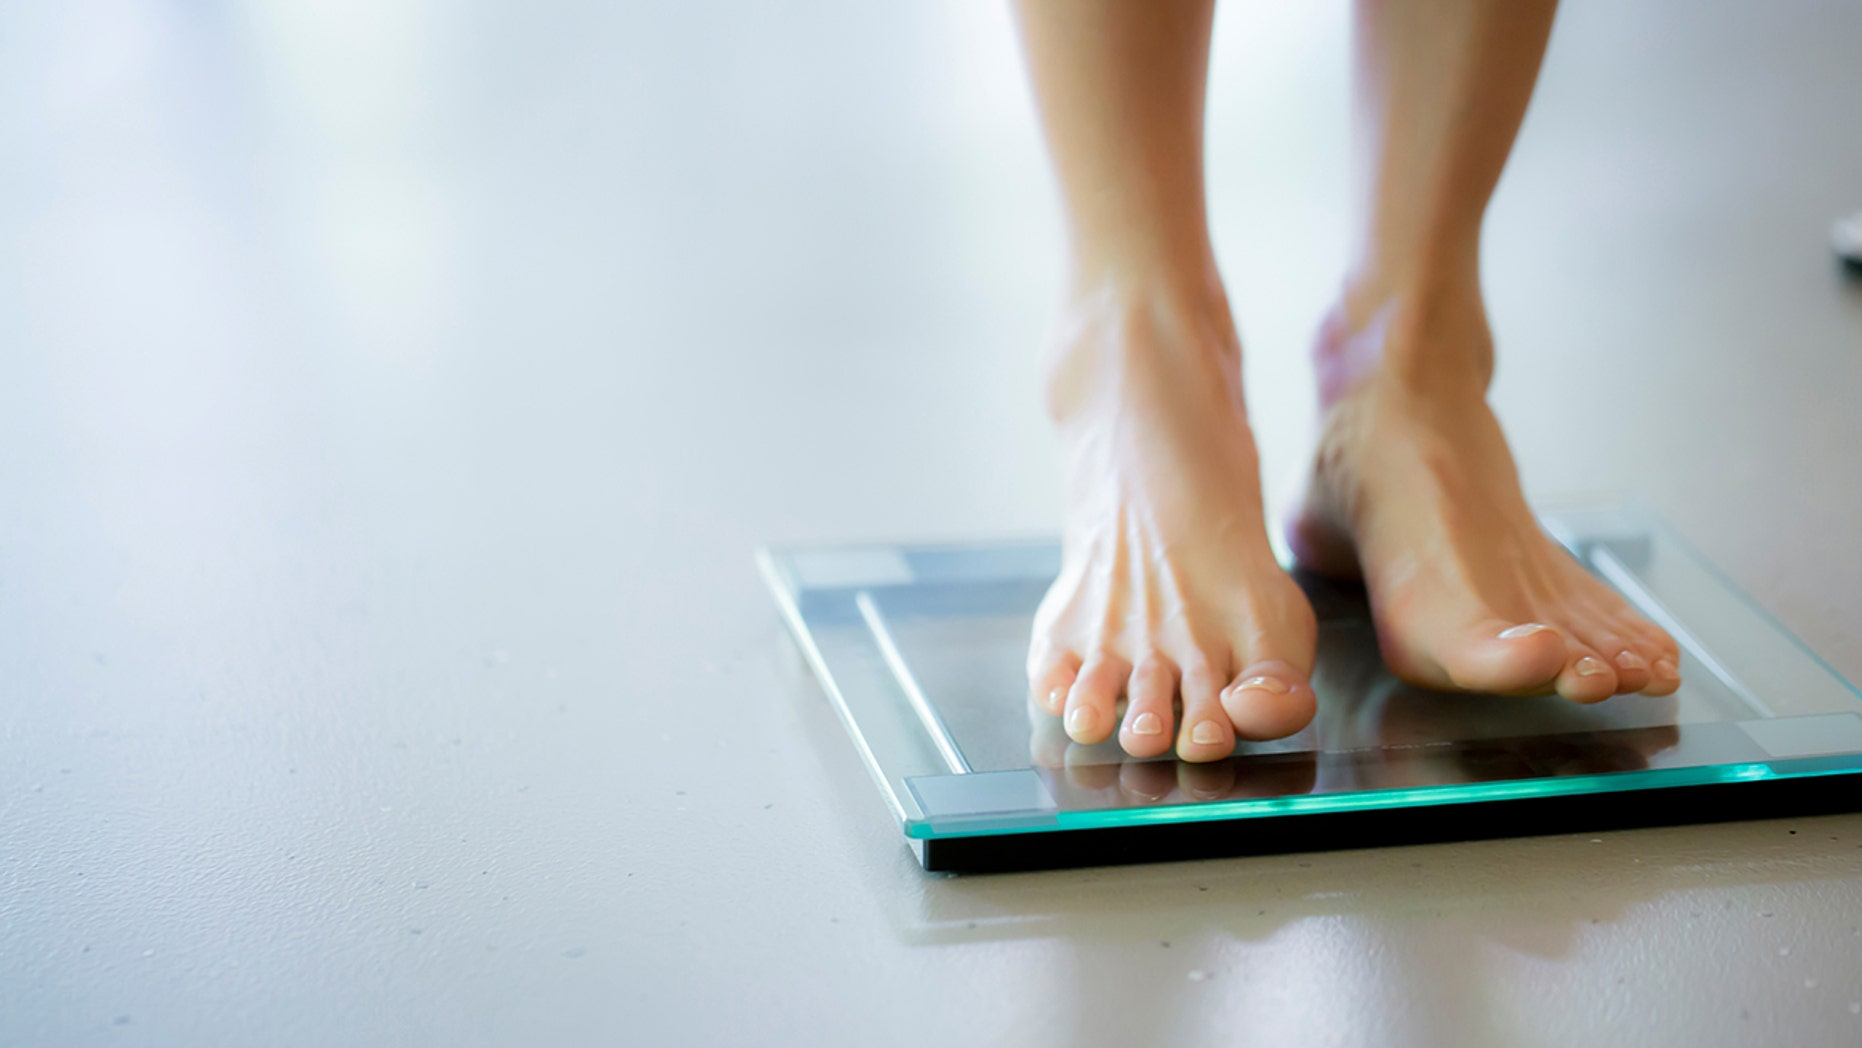 While it may be beneficial for some, stepping on a scale on a daily basis isn't for everyone.